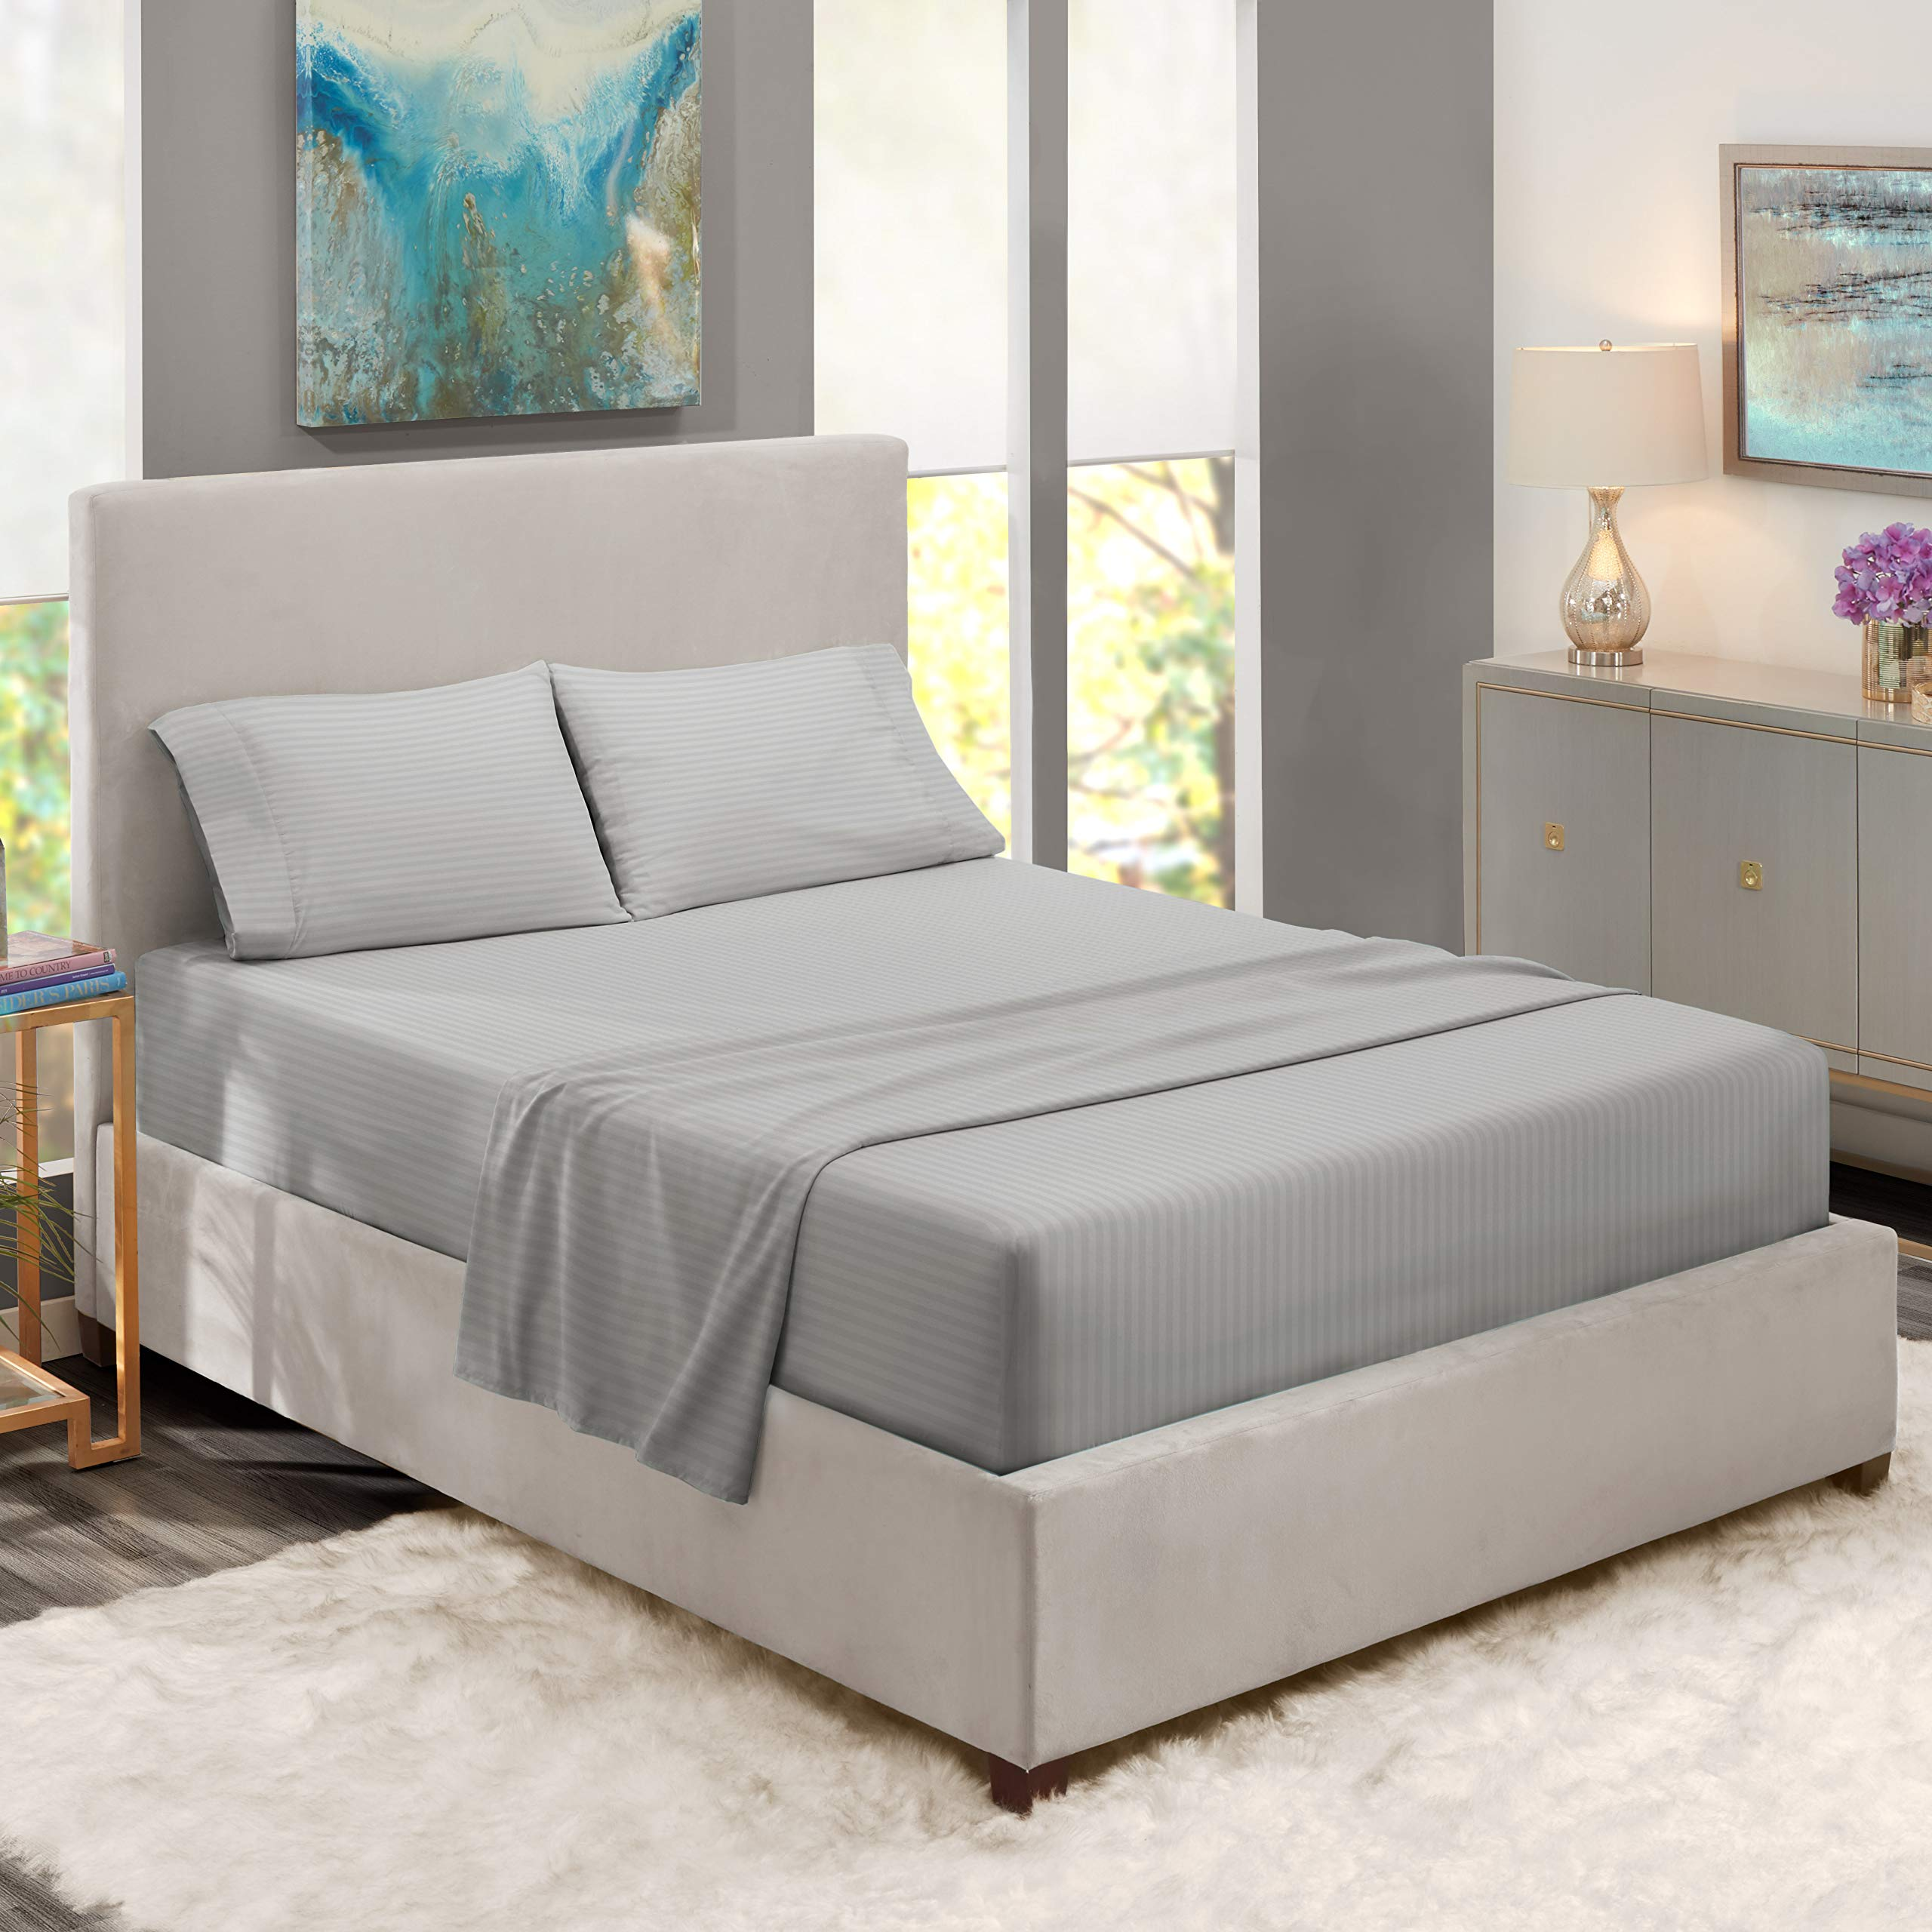 """Nestl Bedding Damask Dobby Stripe 4 Piece Set – 14""""-16"""" Deep Pocket Fitted Sheet – Ultra Soft Double Brushed Microfiber Top Sheet – 2 Hypoallergenic Wrinkle Free Cooling Pillow Cases, Full - Silver"""